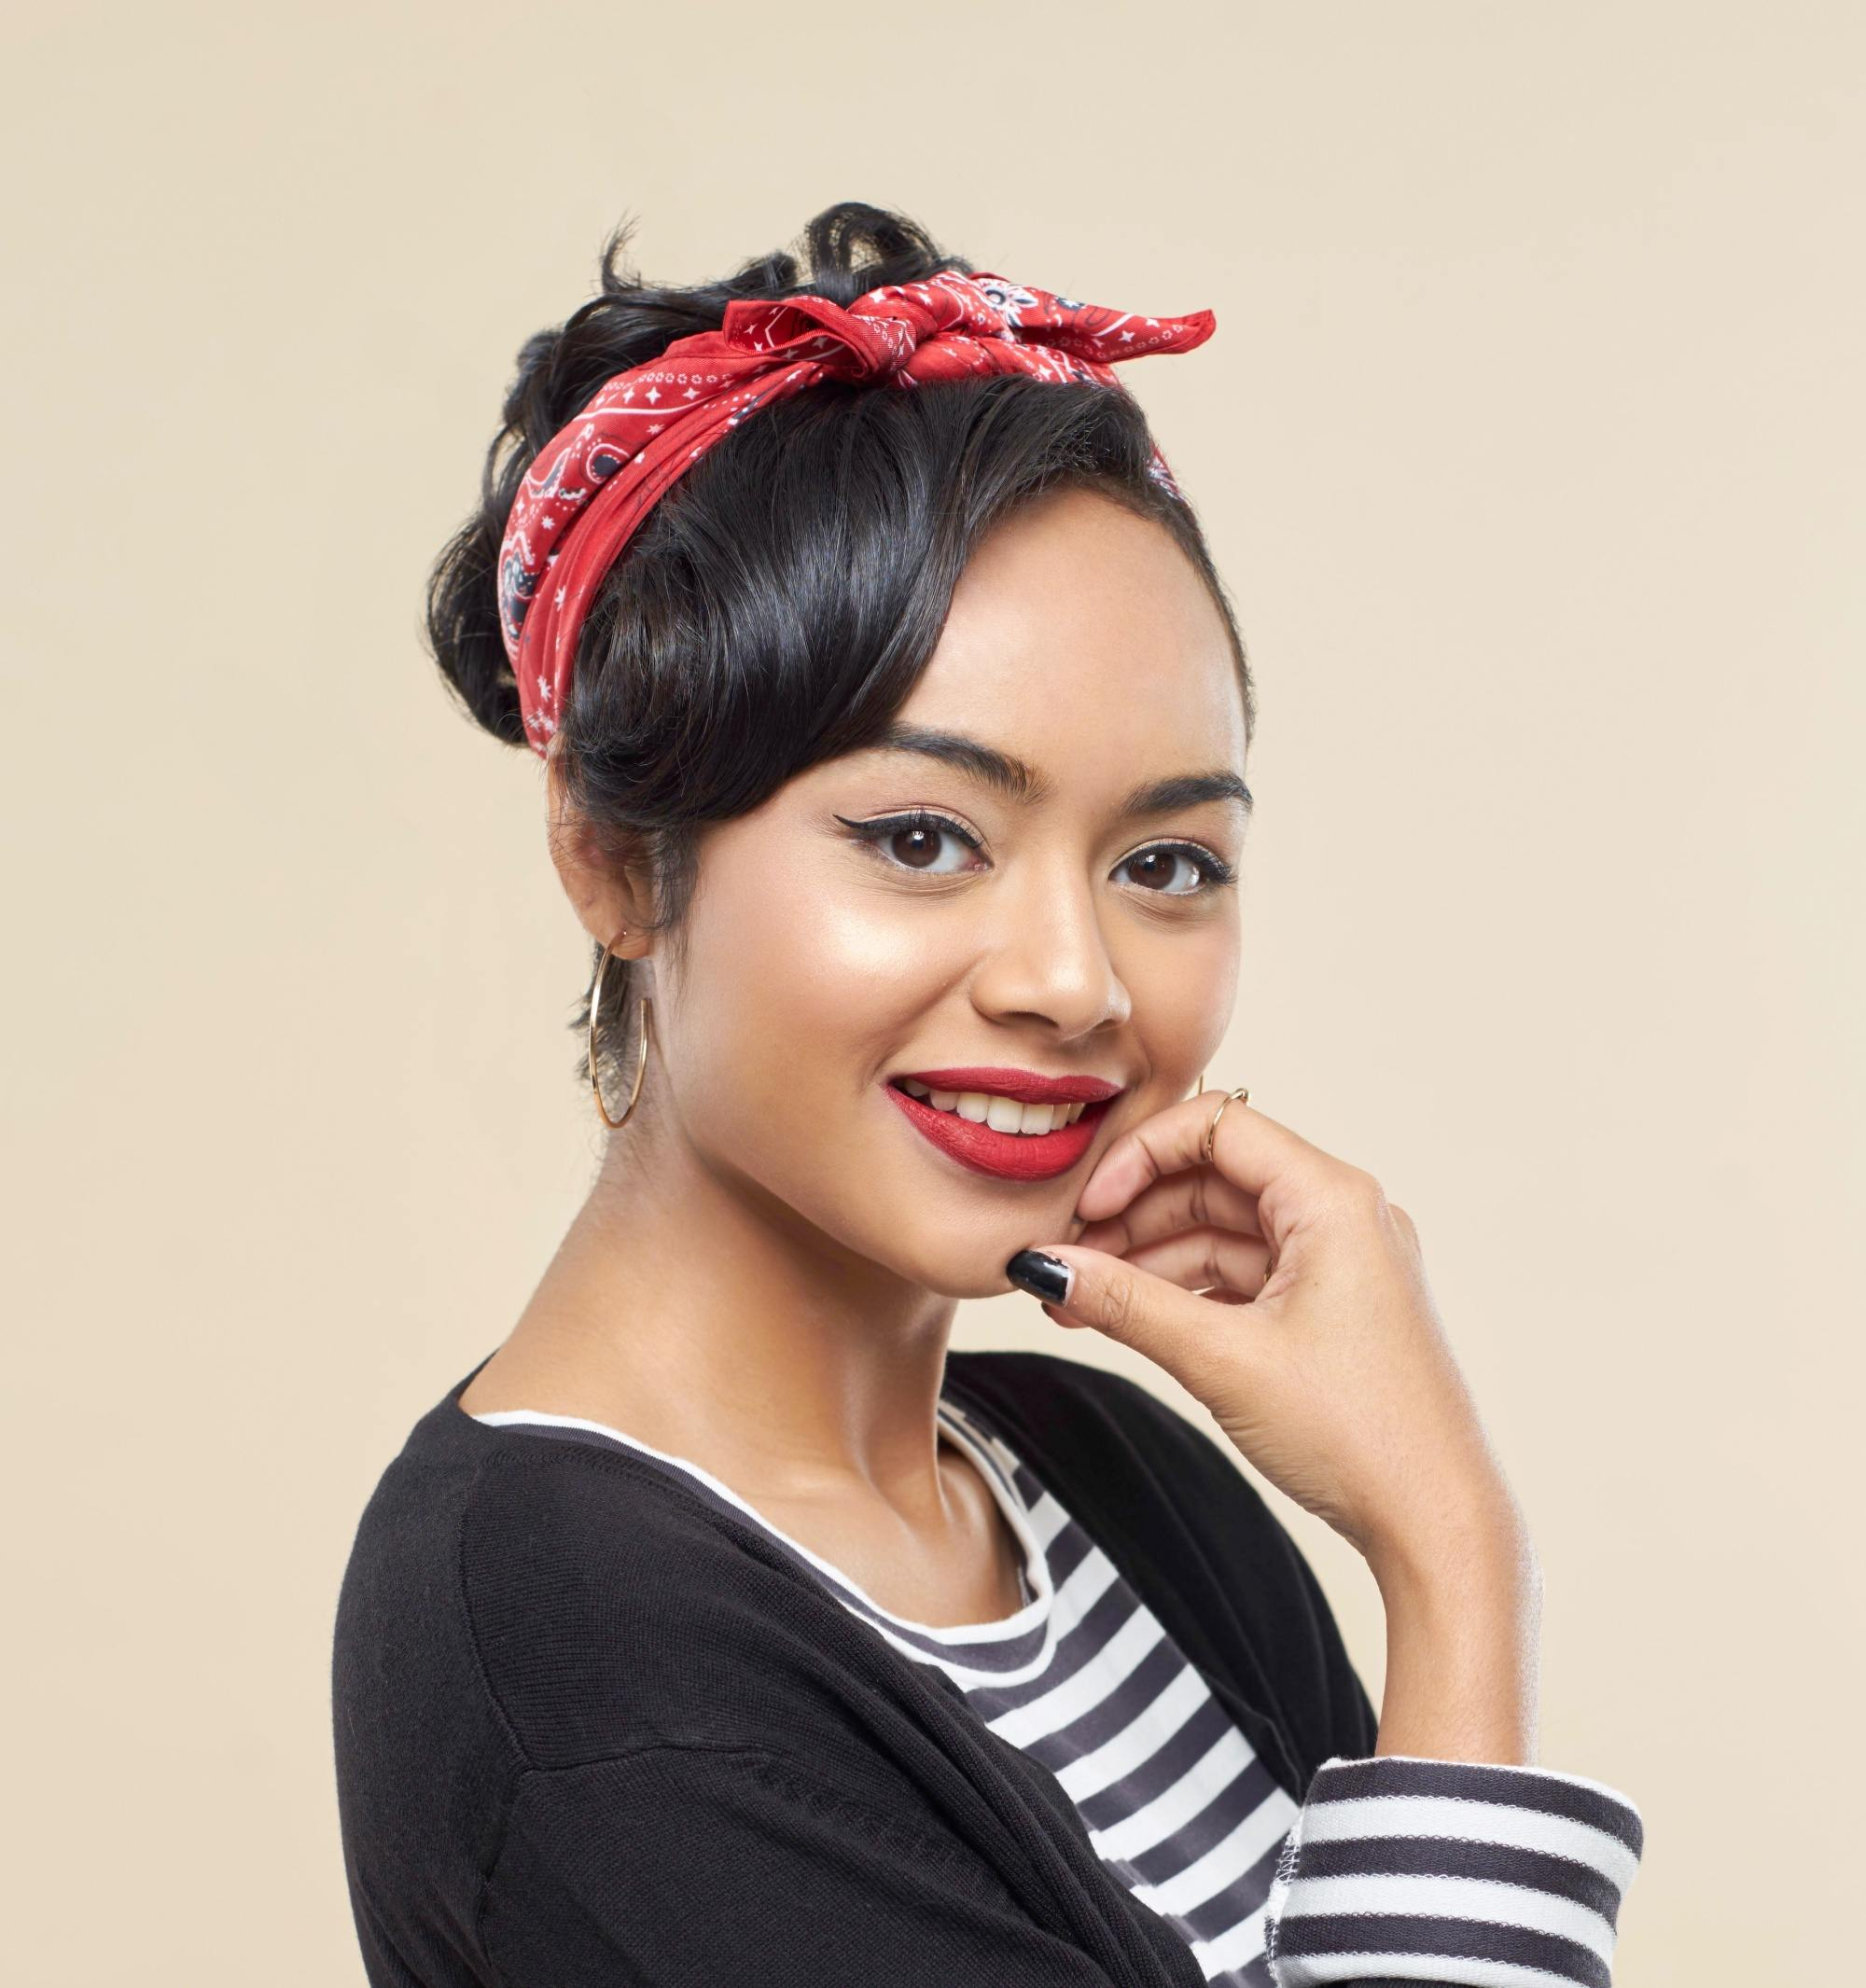 Headband hairstyles: Closeup shot of an Asian woman with black hair in an updo wearing a red headband